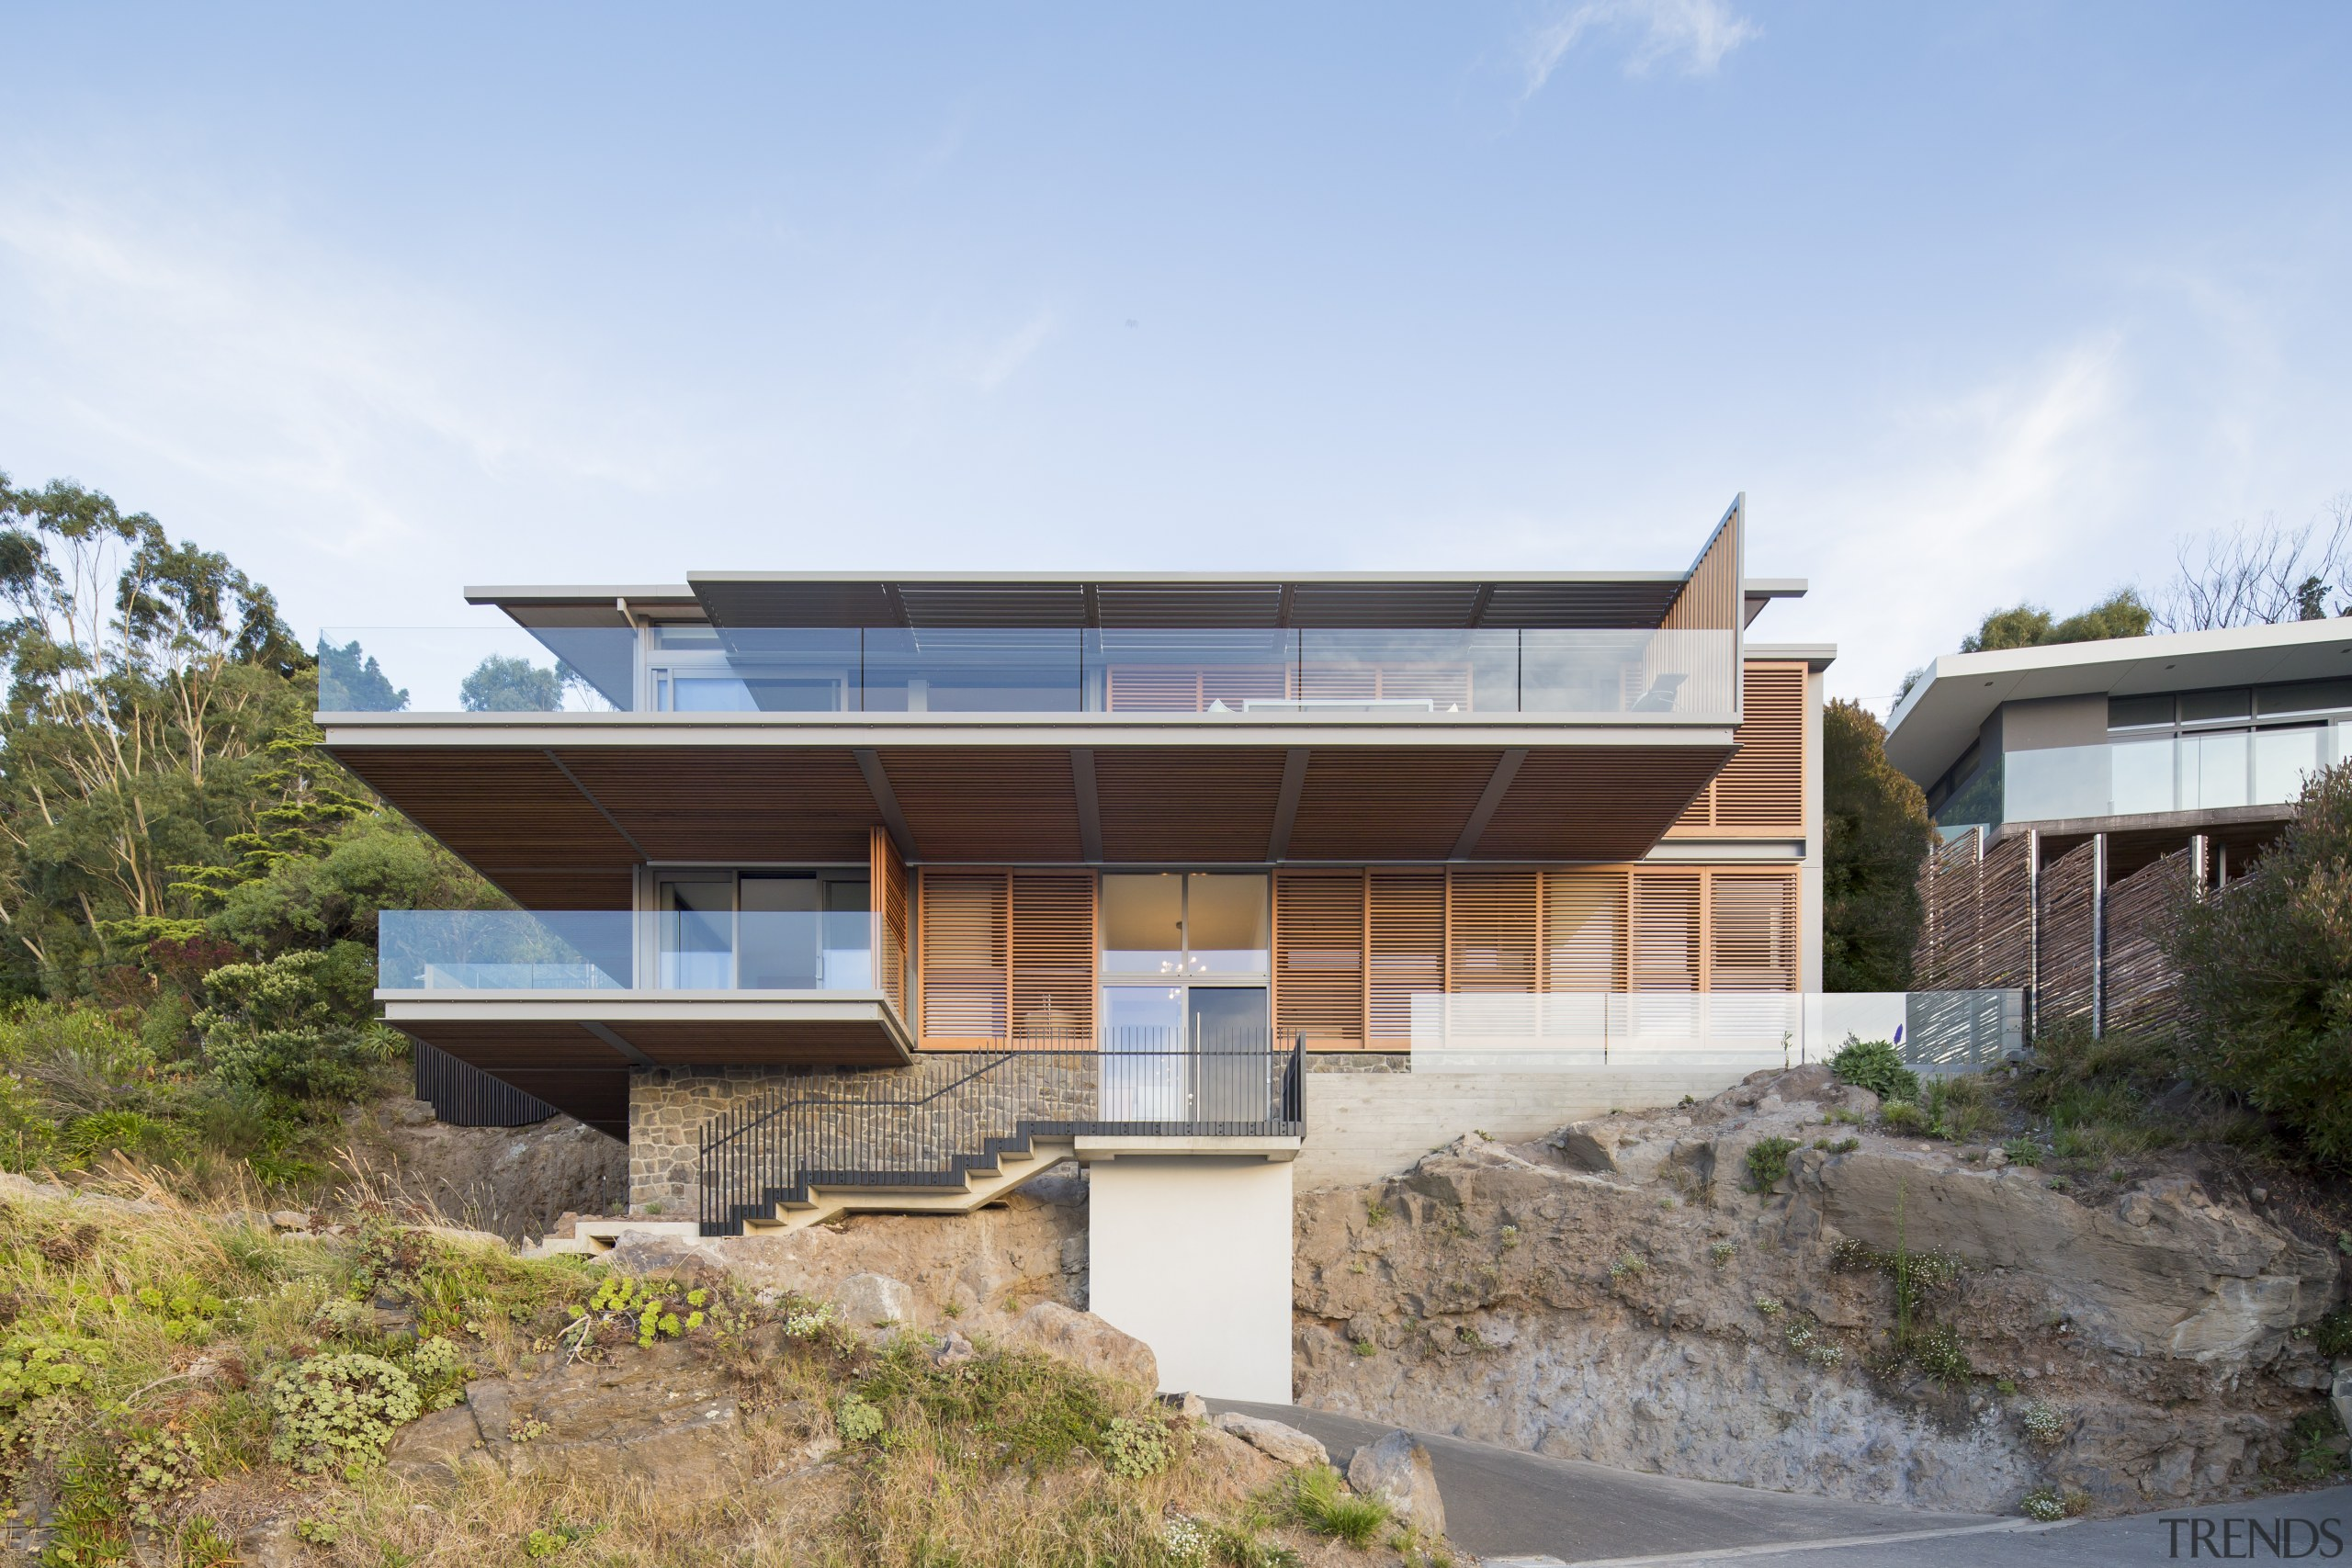 The overhanging top level of this home provides white